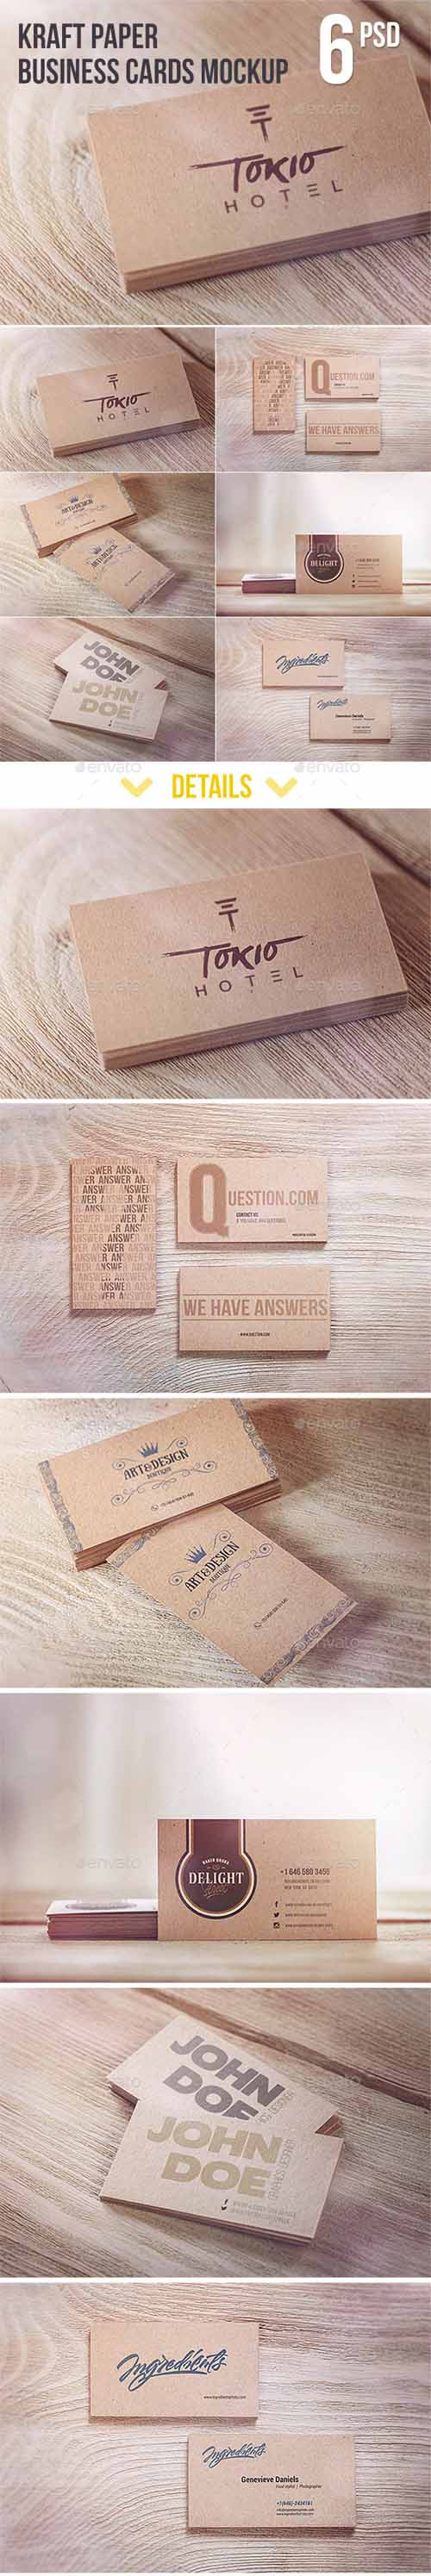 Kraft Paper Business Cards MockUp 11406178 » Vector, PSD Templates ...